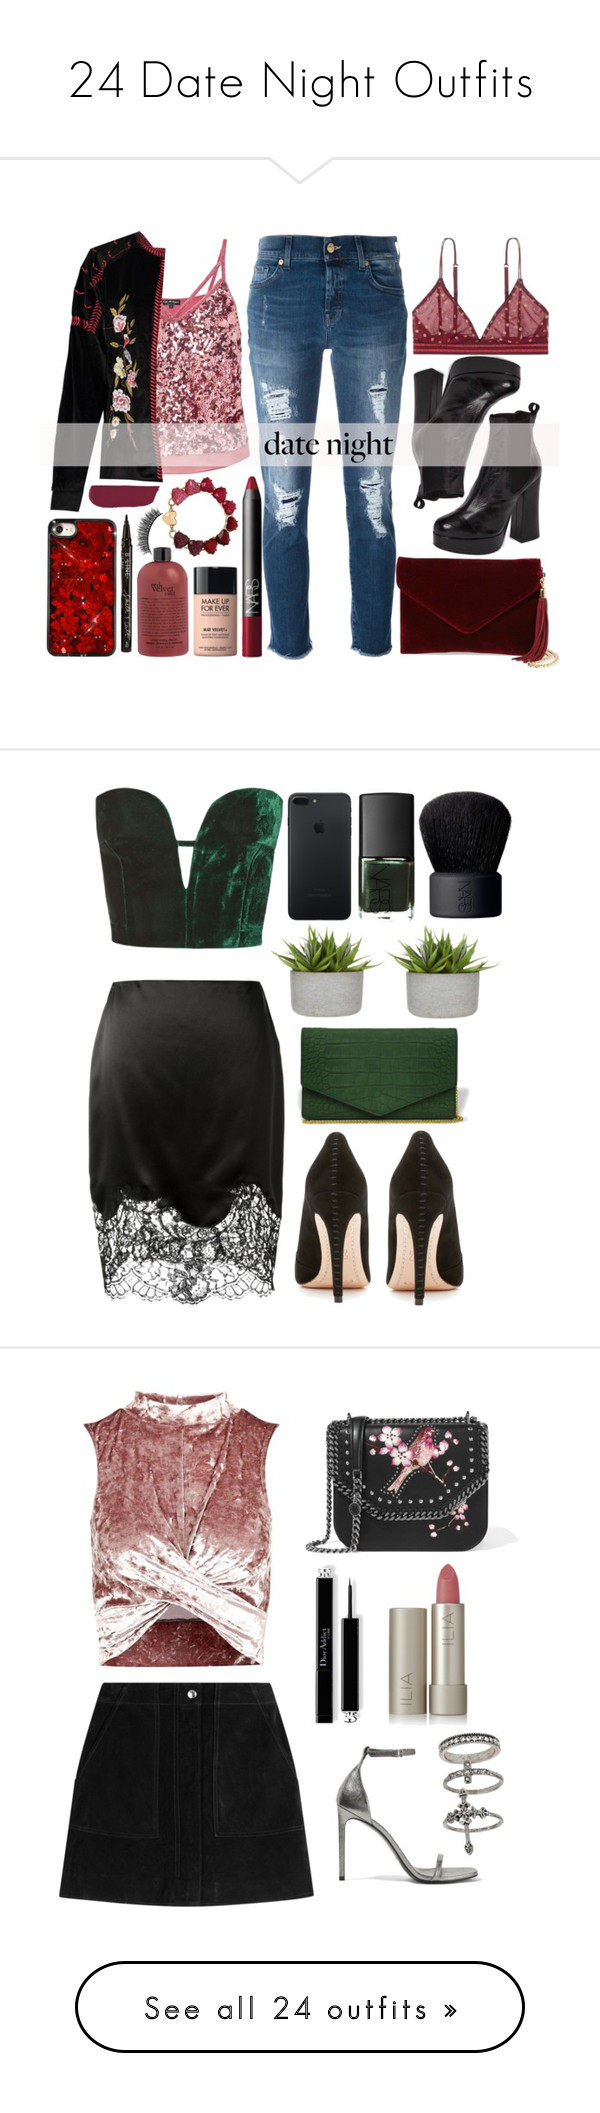 24 Date Night Outfits By Polyvore Editorial Liked On Polyvore Featuring Waystowear Datenightoutfi Night Outfits Date Night Outfit Casual Date Night Outfit